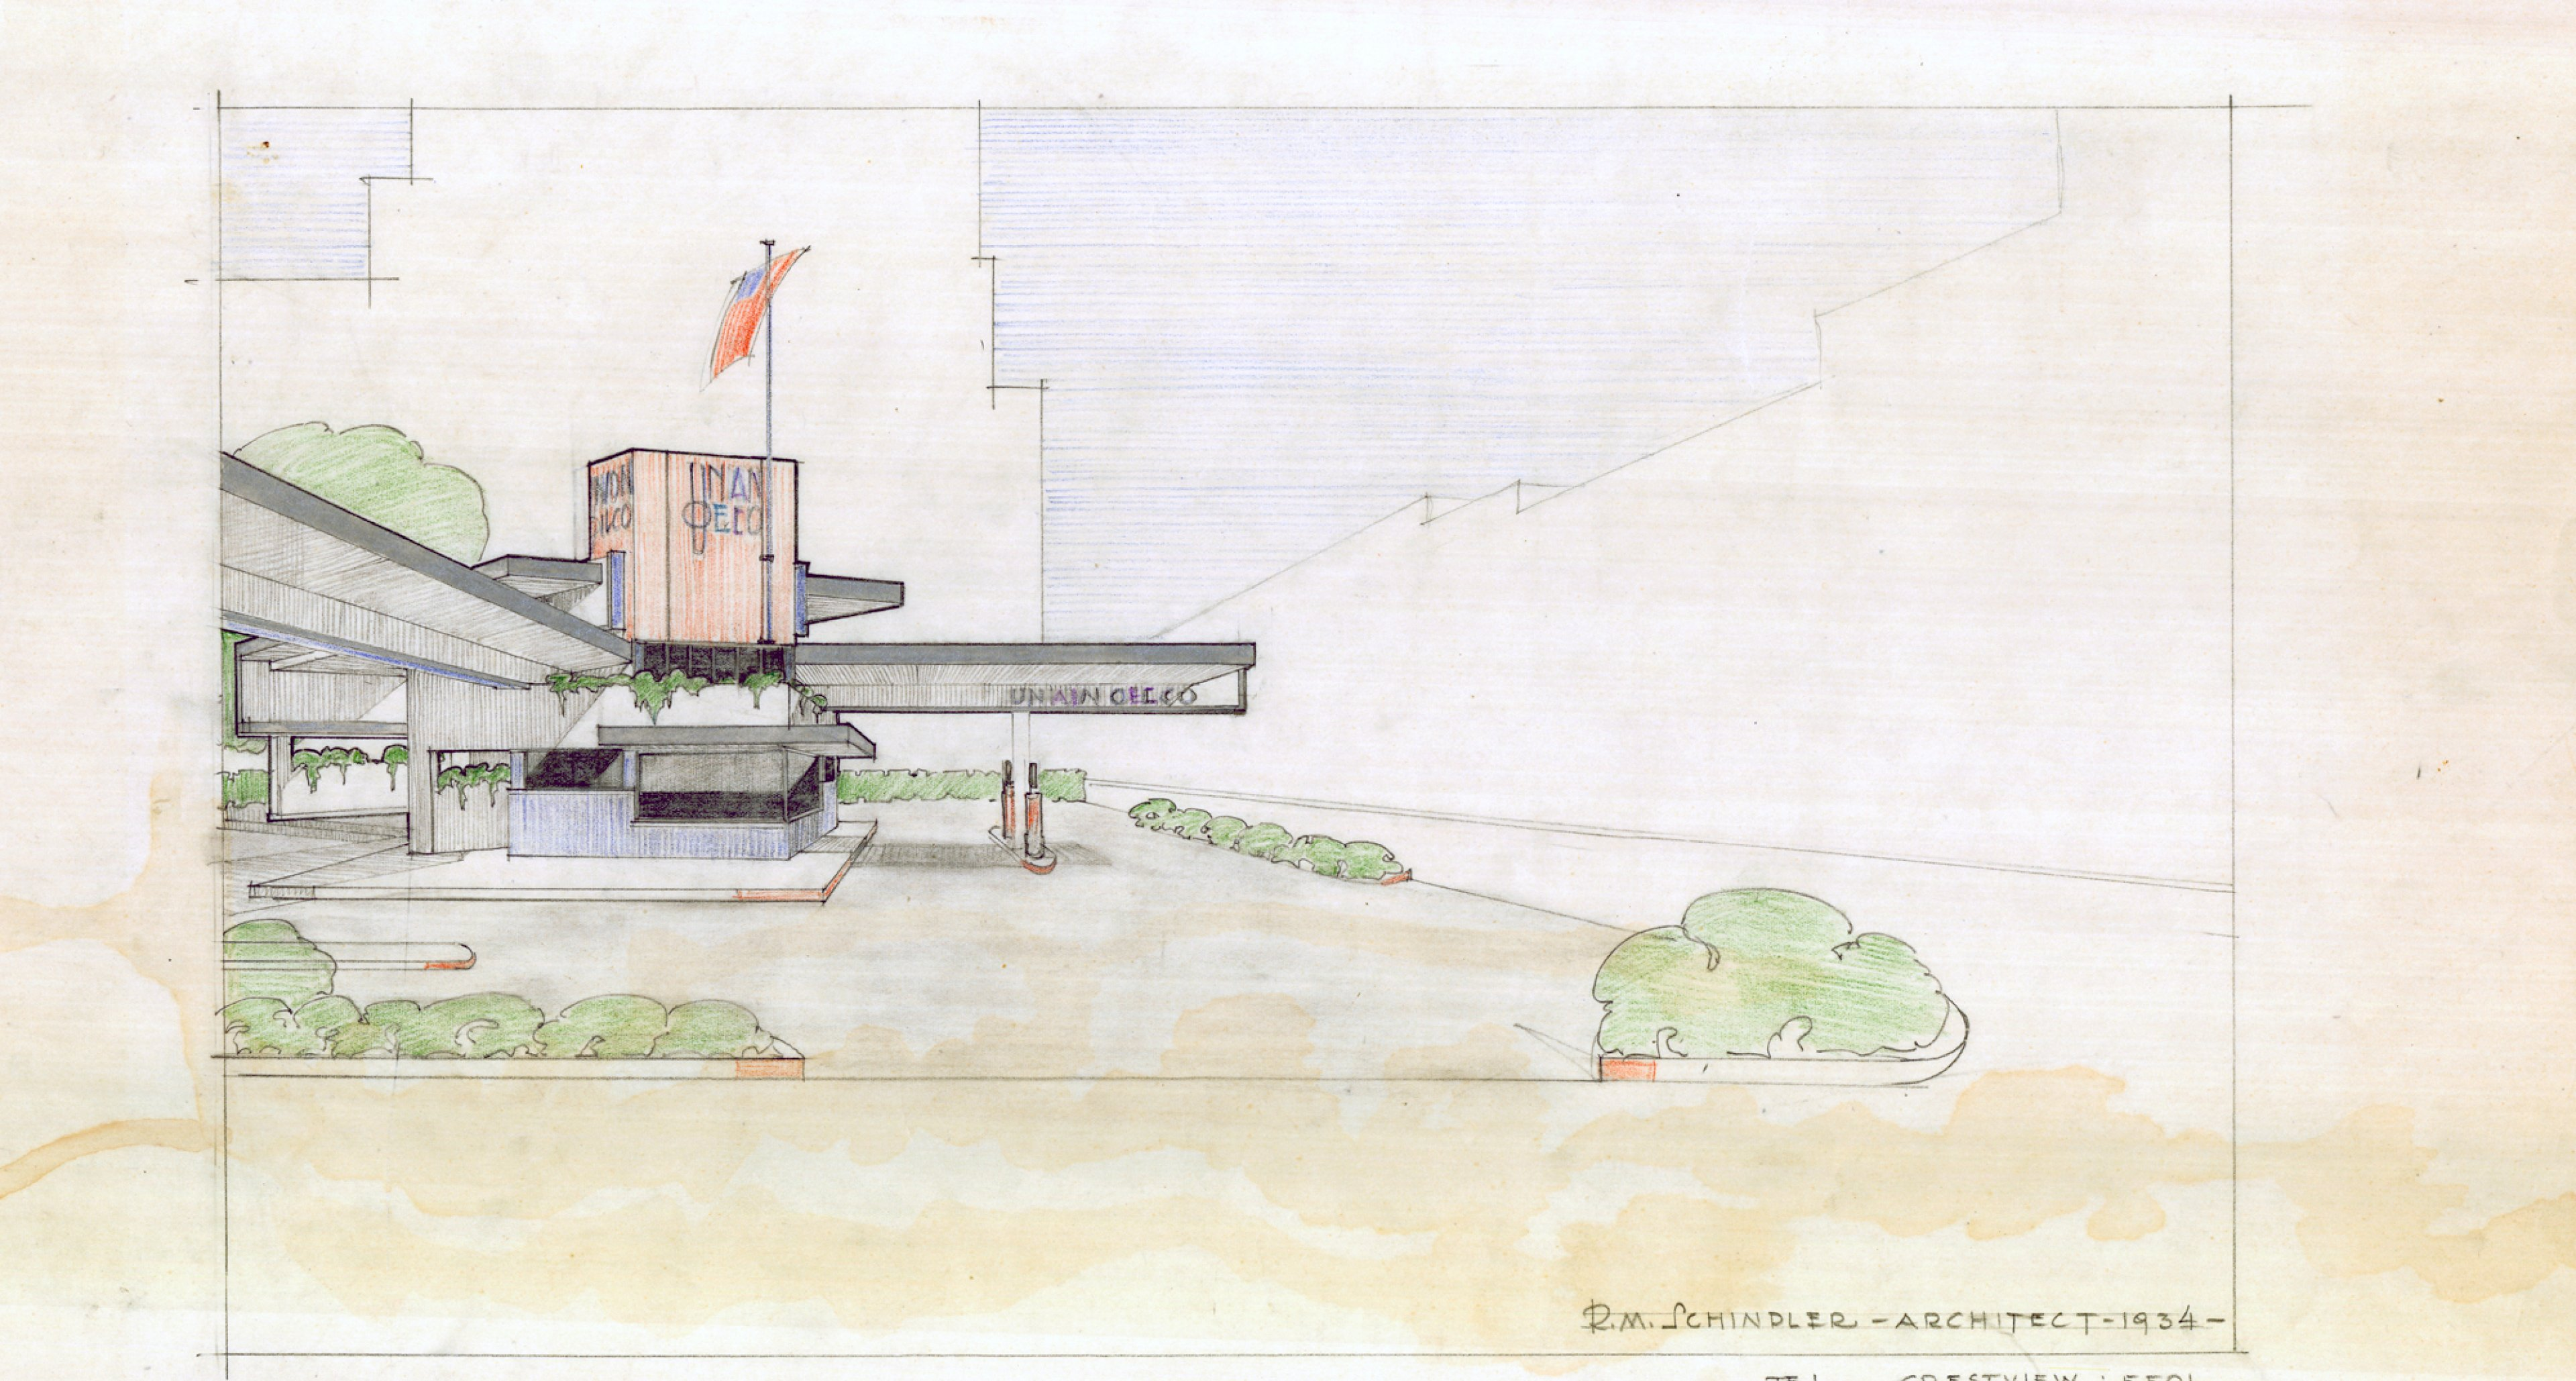 Rudolph Schindler Union Oil Gas Station prototype, 1933 (Art Design and Architecture Library UCSB).